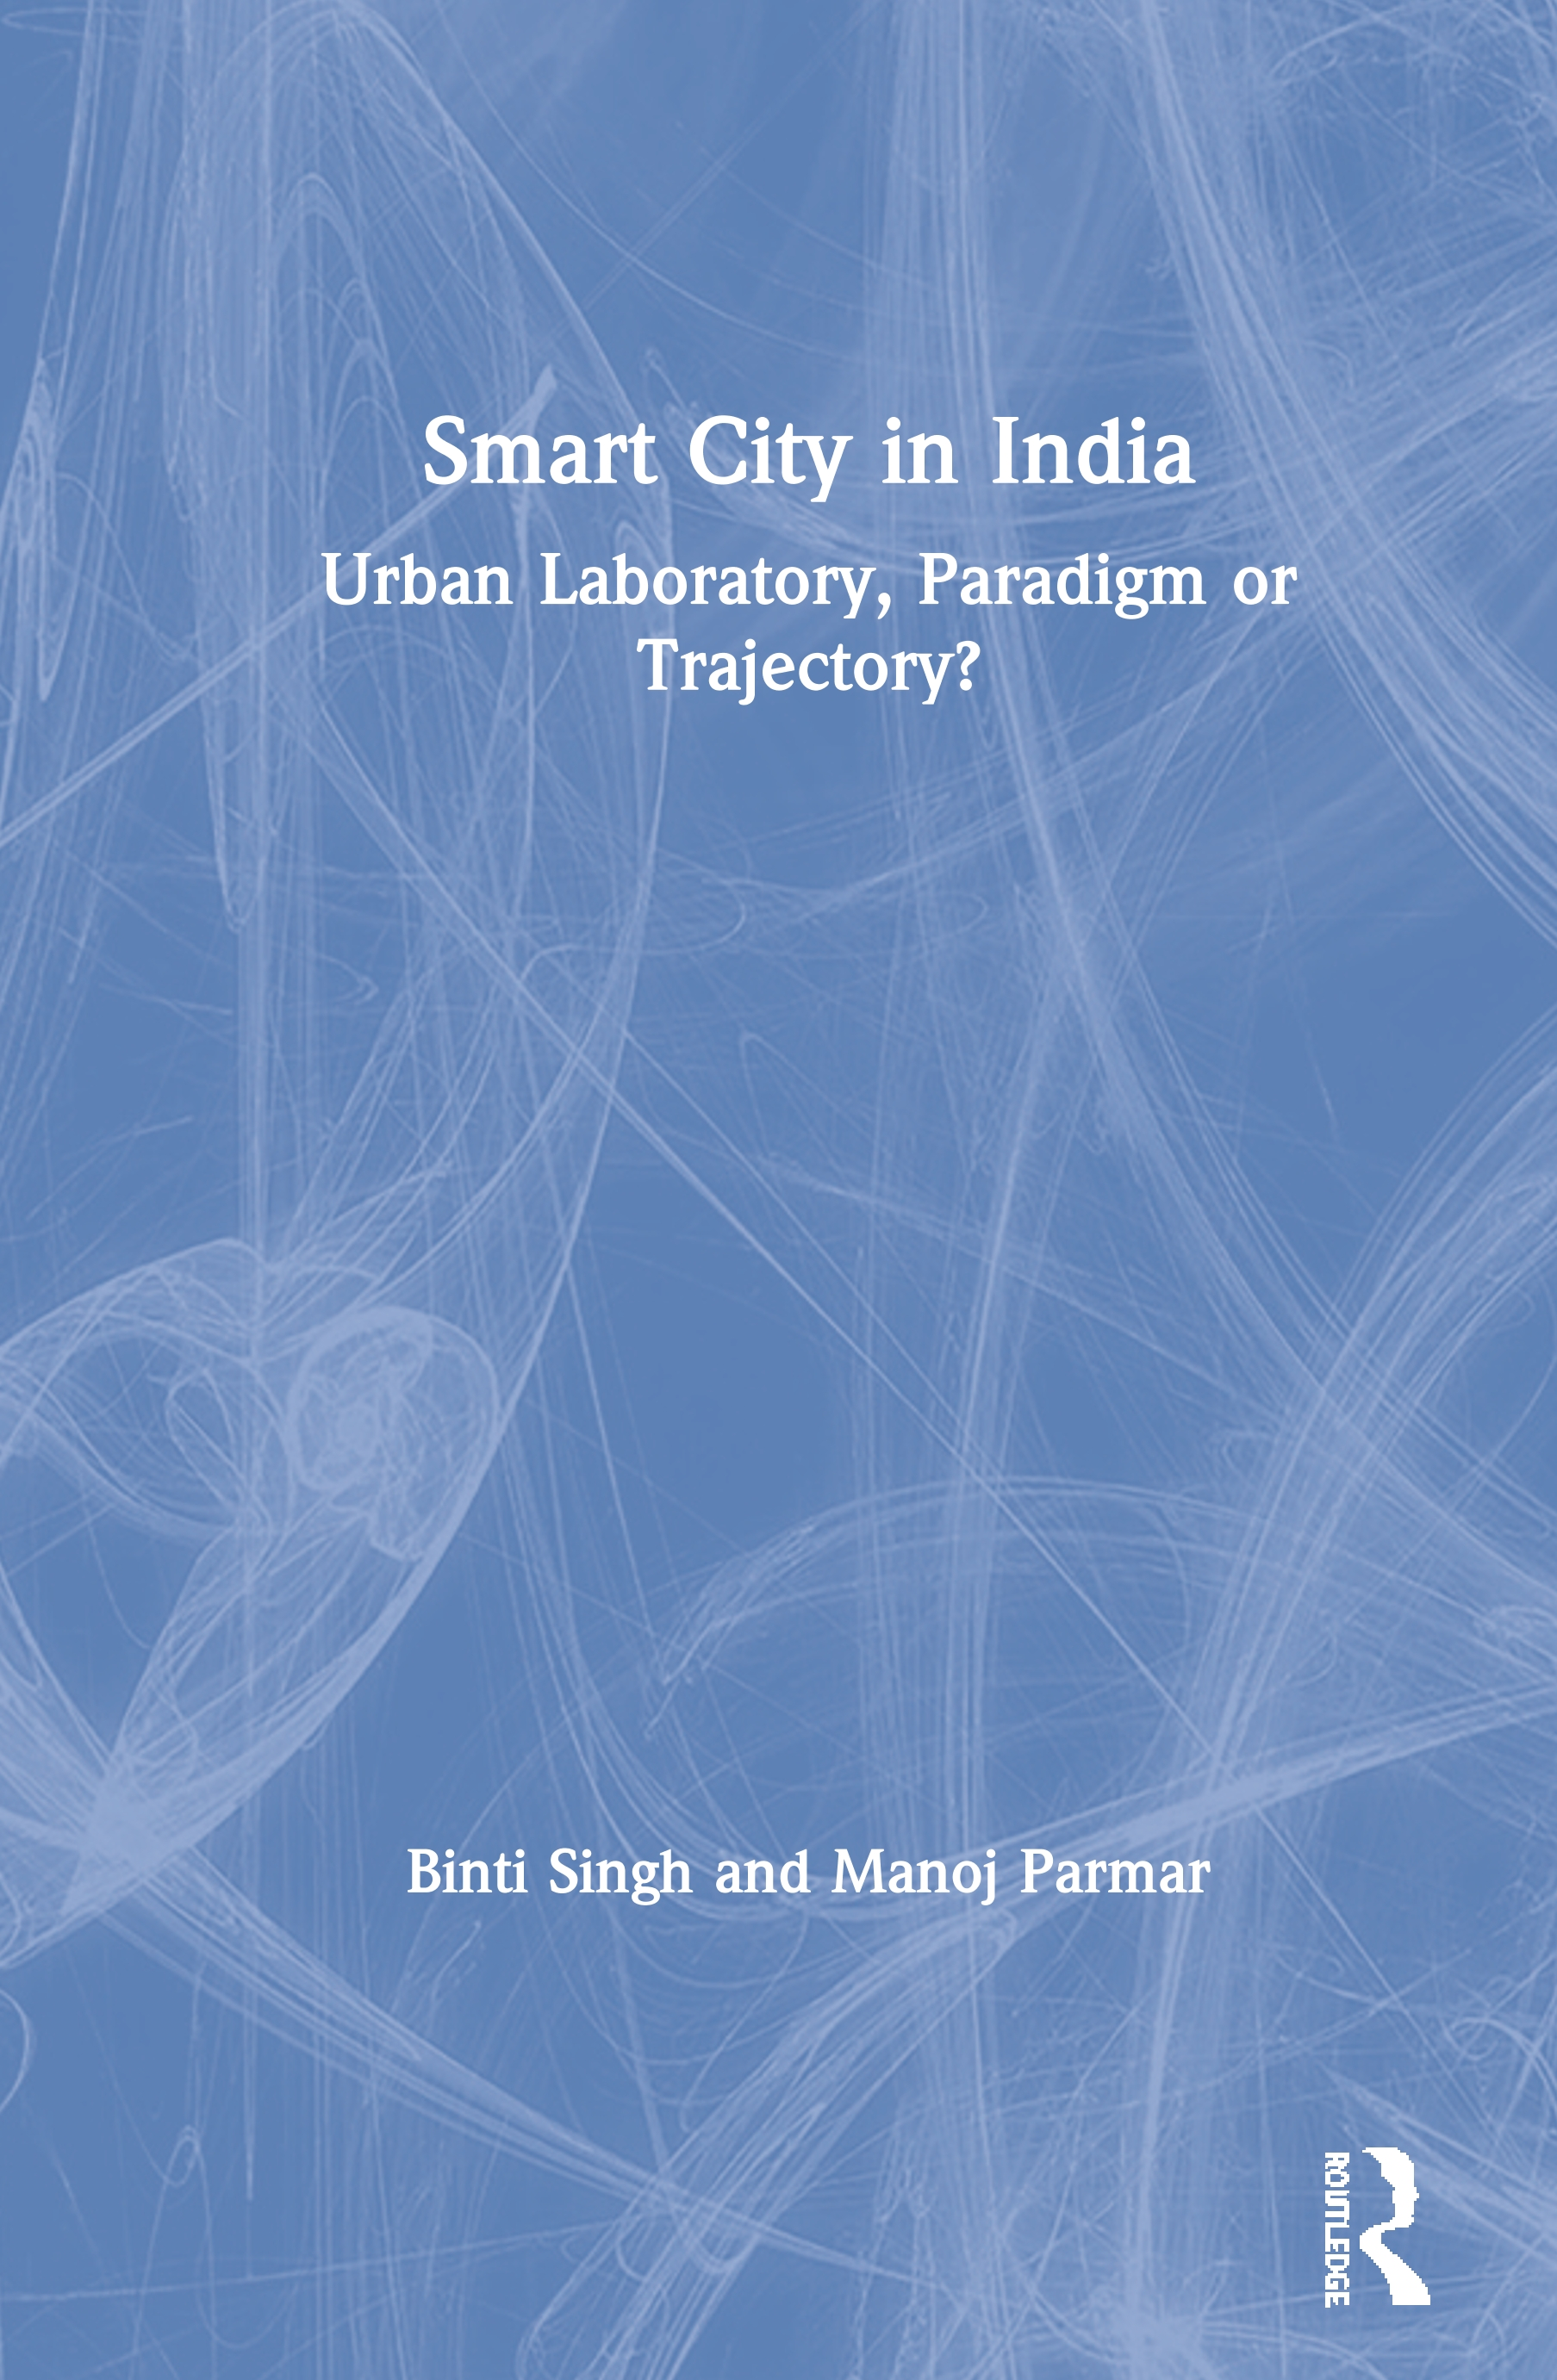 Smart City in India: Urban Laboratory, Paradigm or Trajectory? book cover